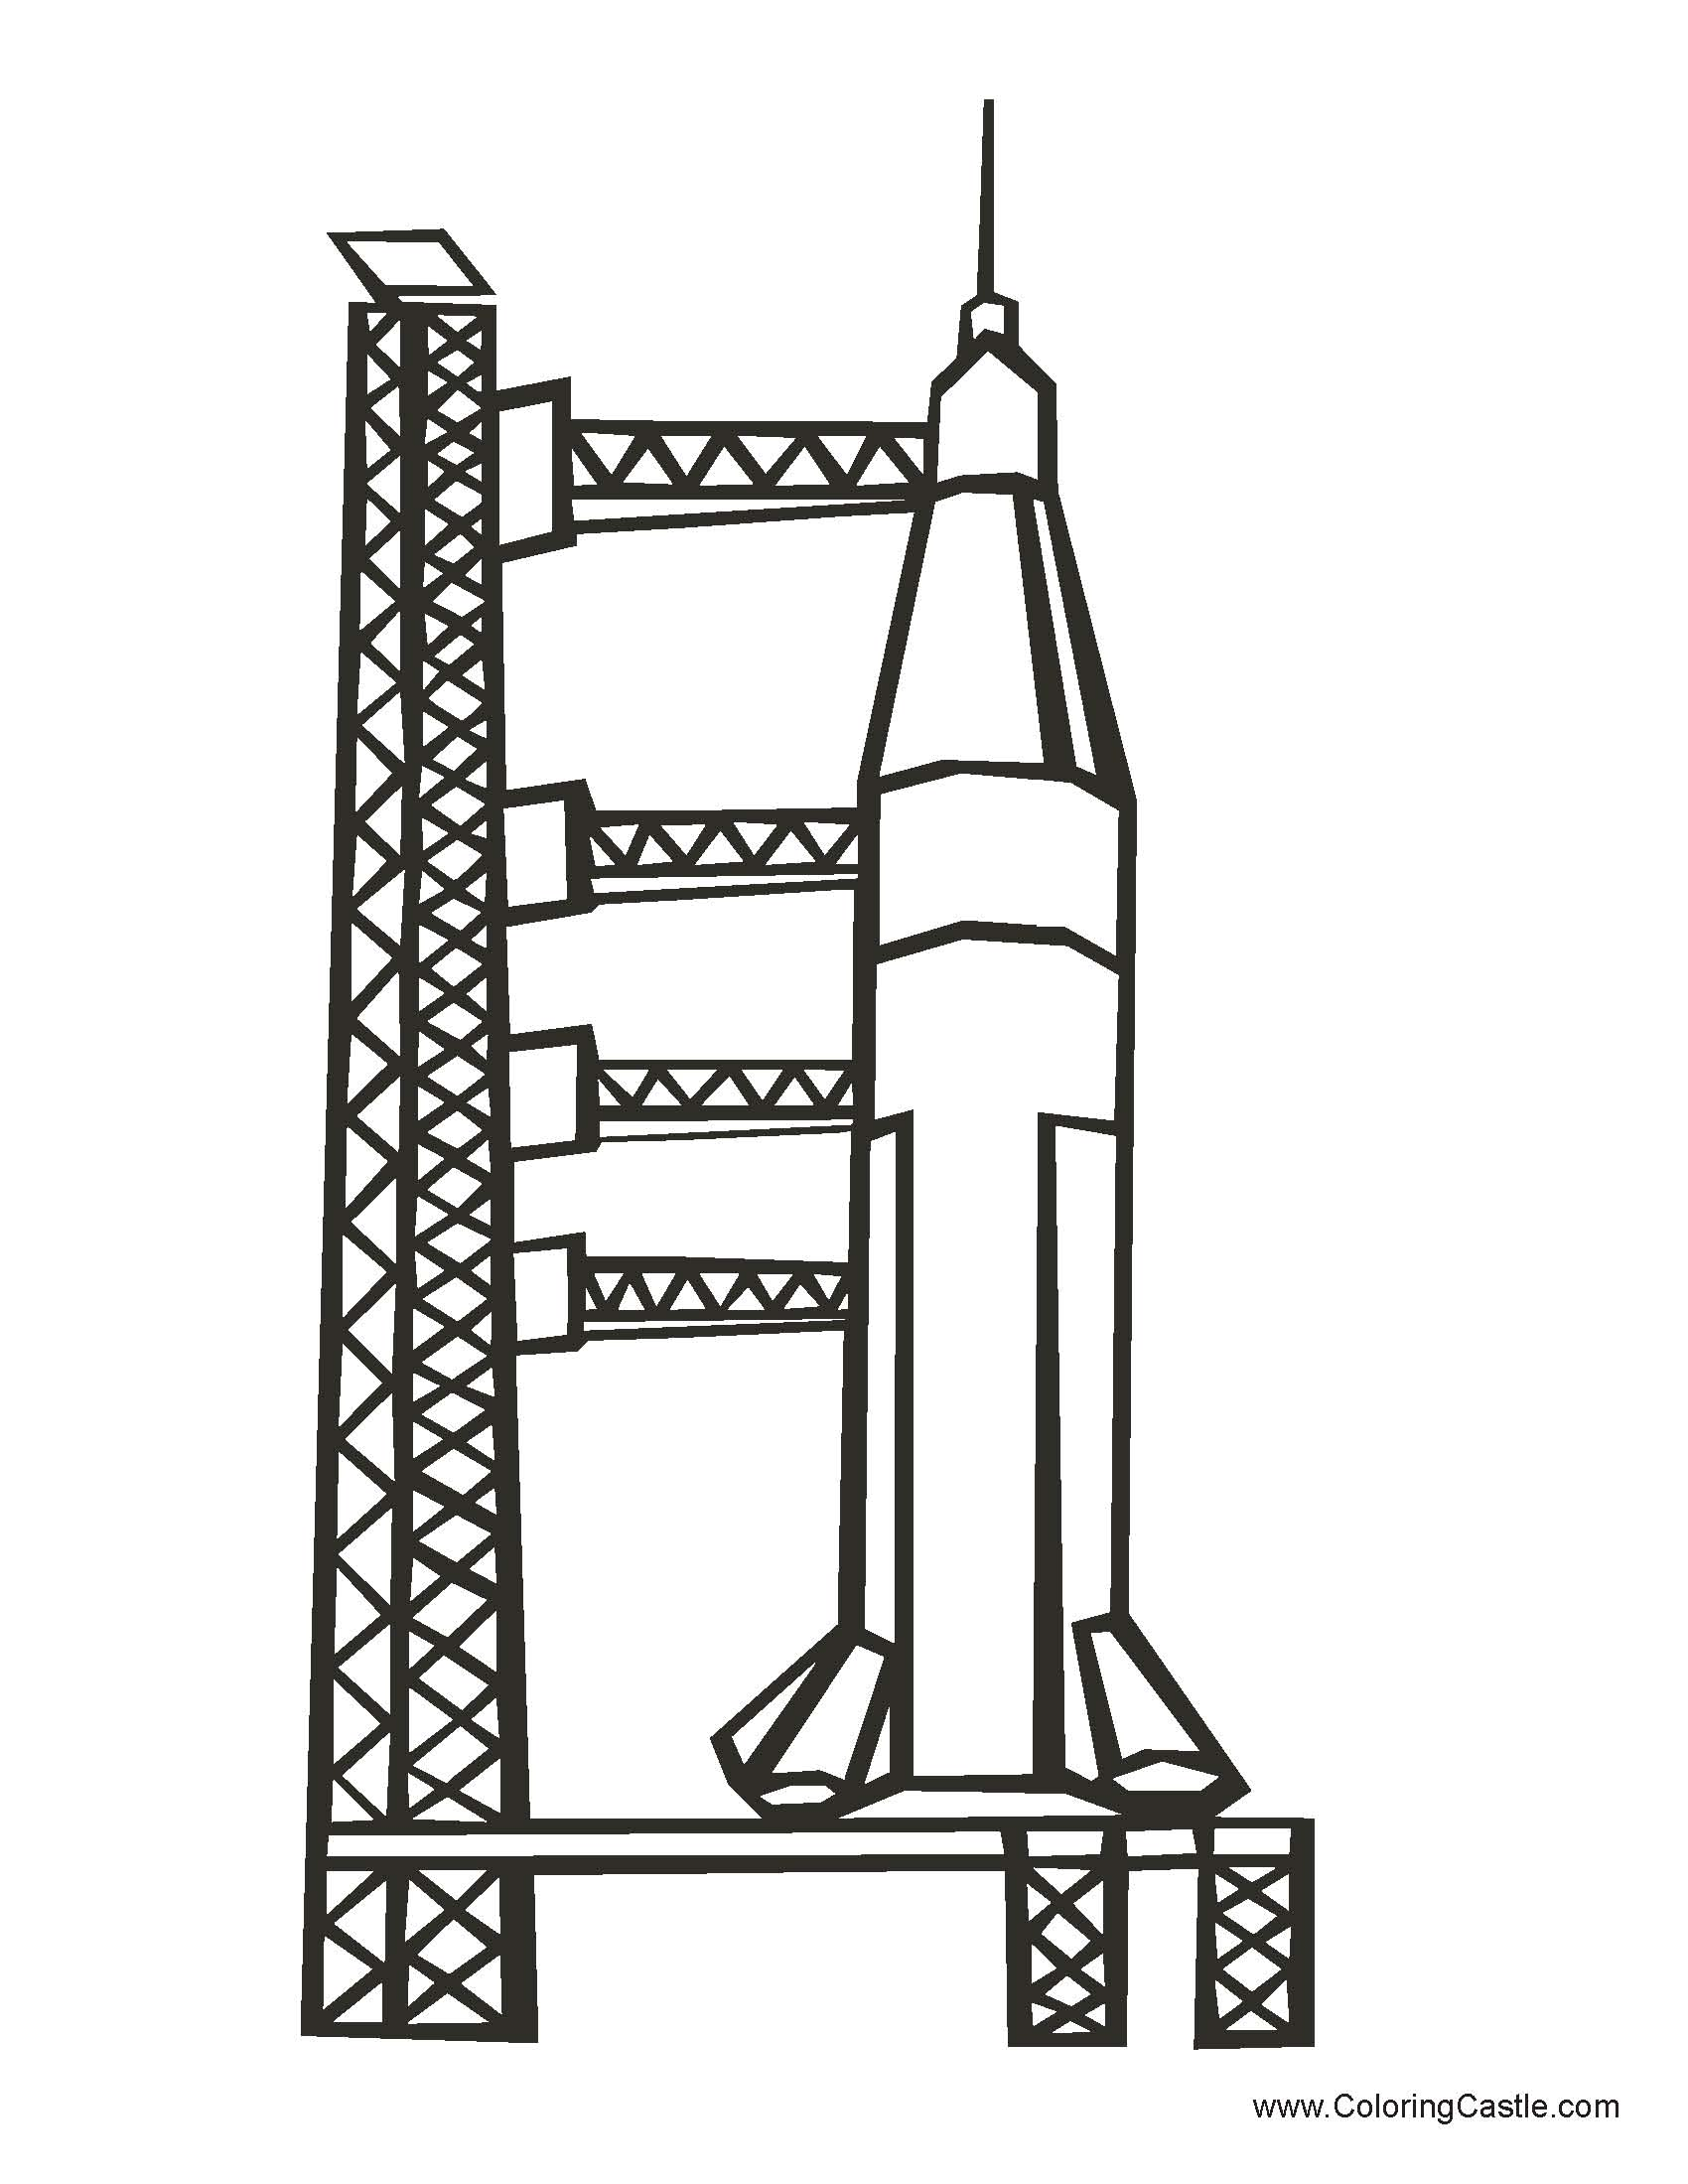 sears tower coloring pages - photo#2